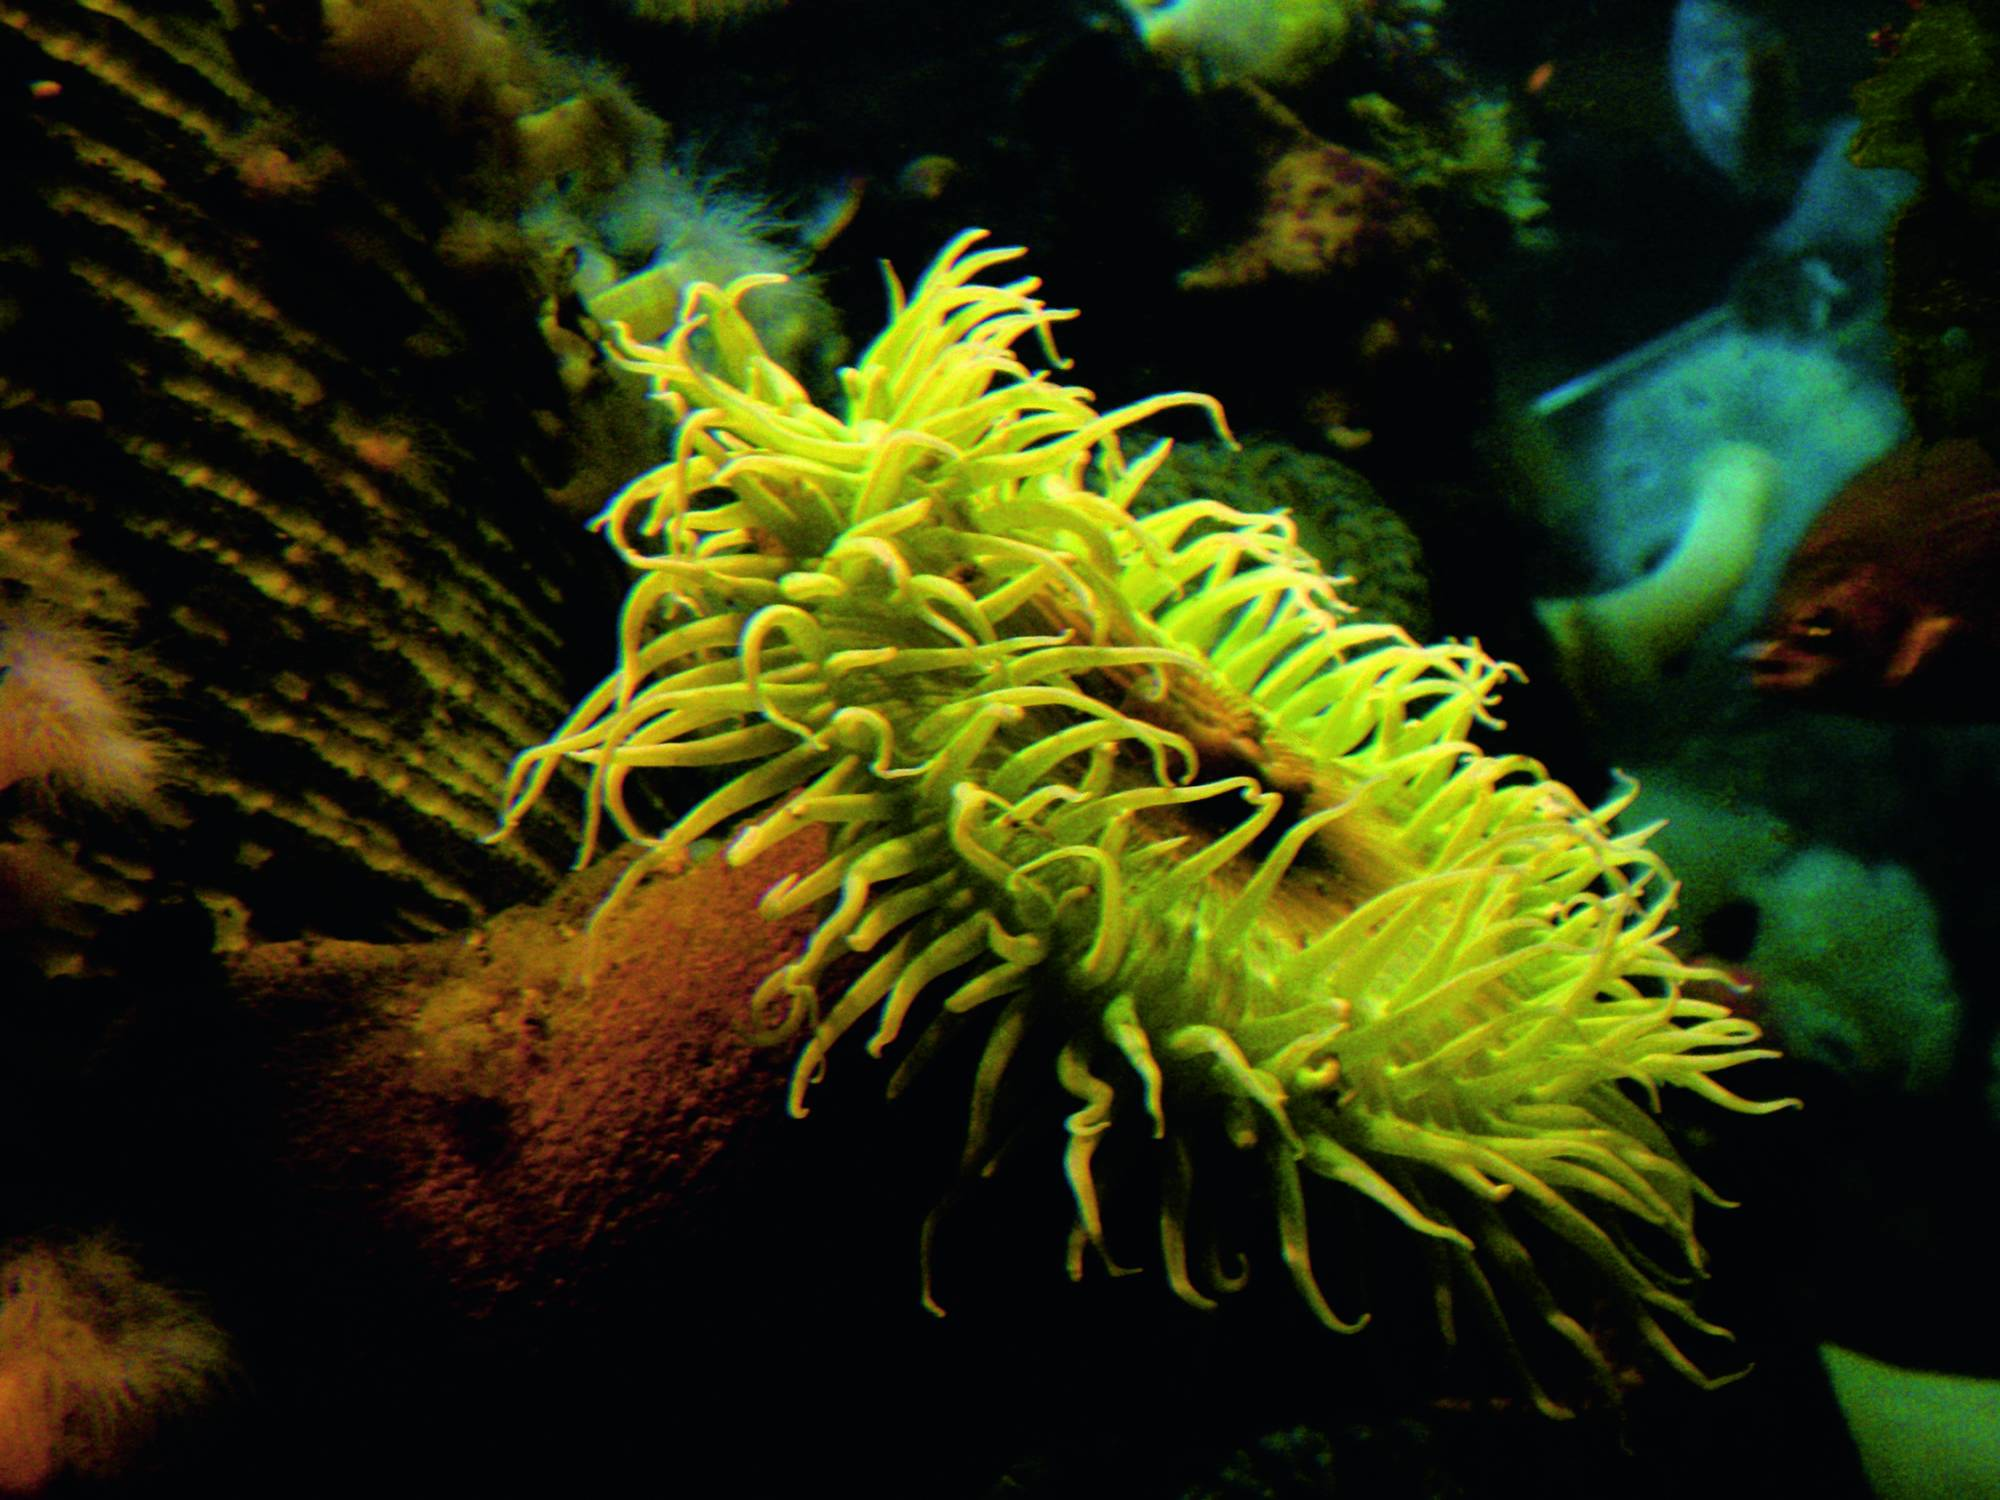 Green underwater creature with tentacles